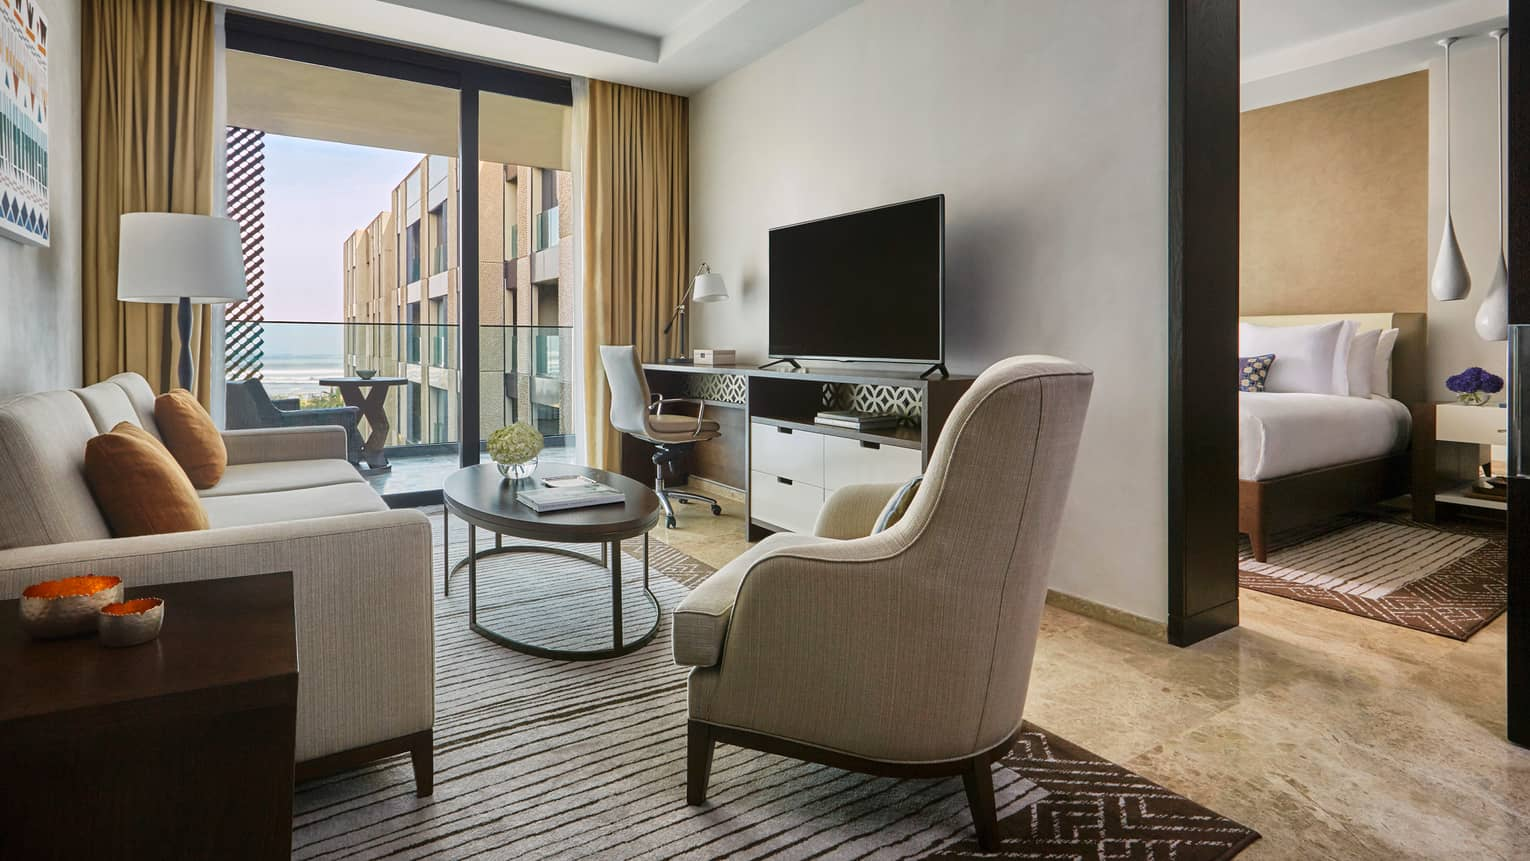 Four Seasons Deluxe Suite modern beige sofa, armchair, TV, large glass door to balcony